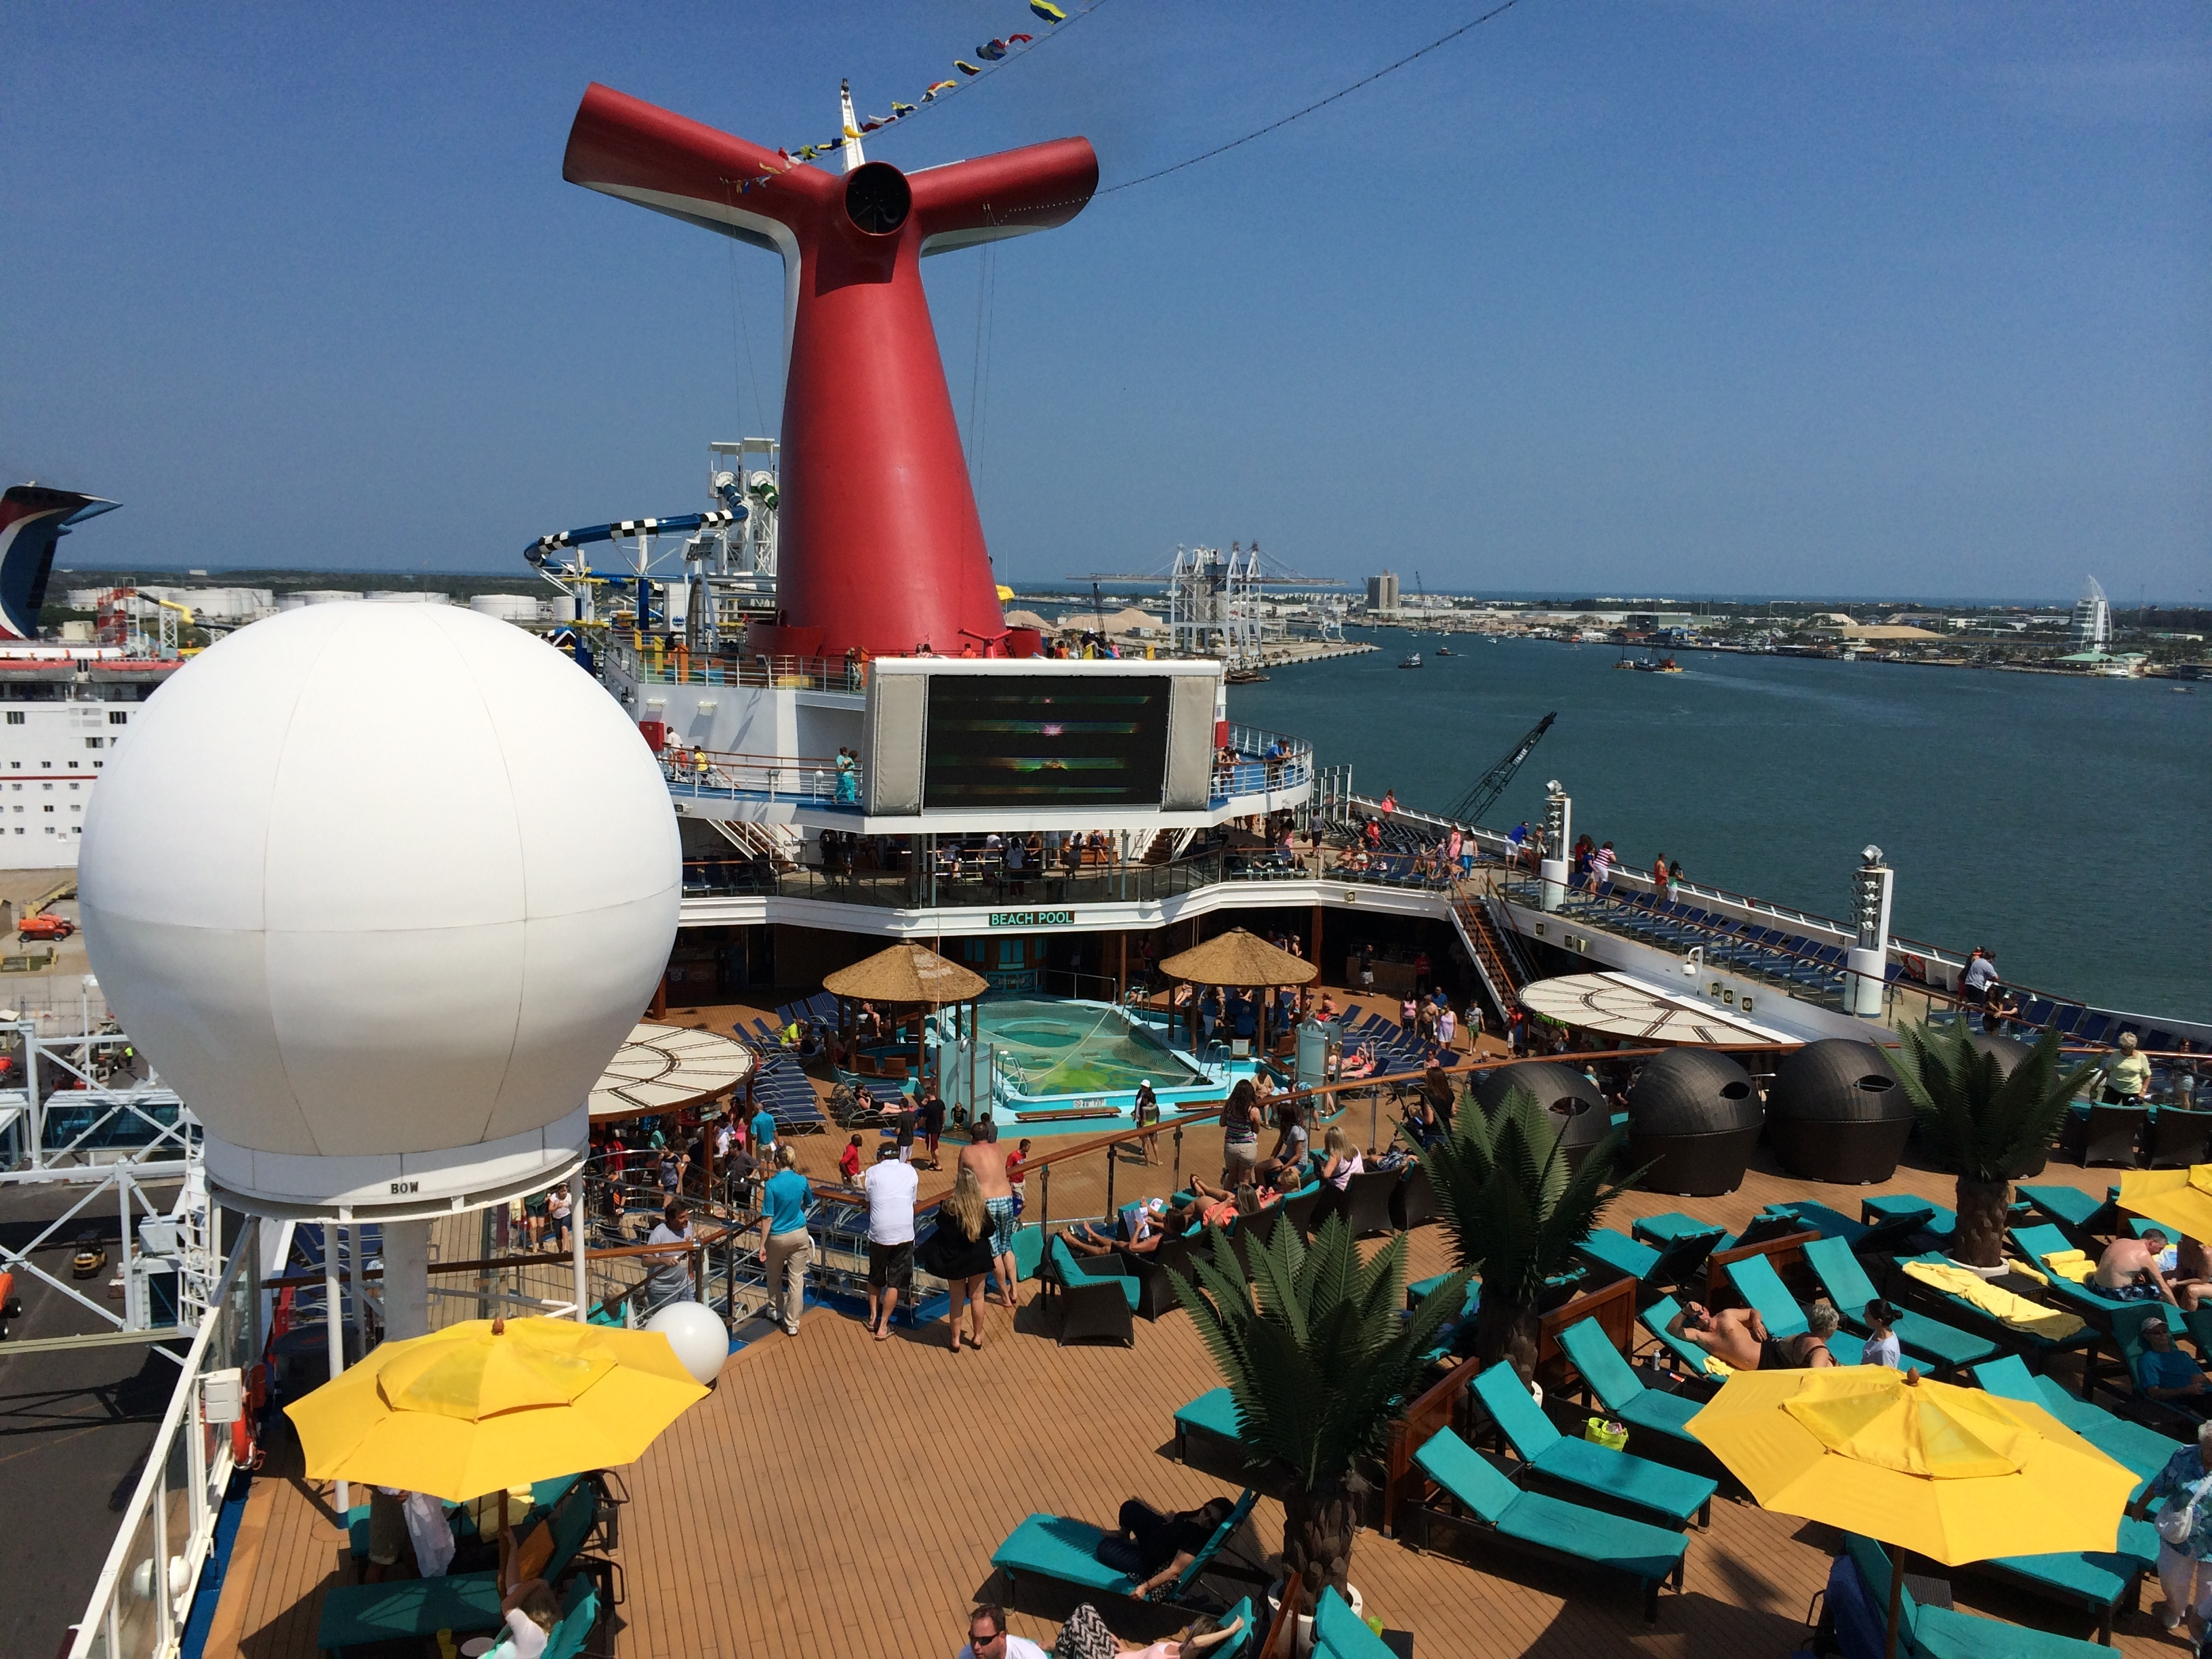 Carnival Sunshine Cruise Review Apr 27 2014 A Little Crowded But